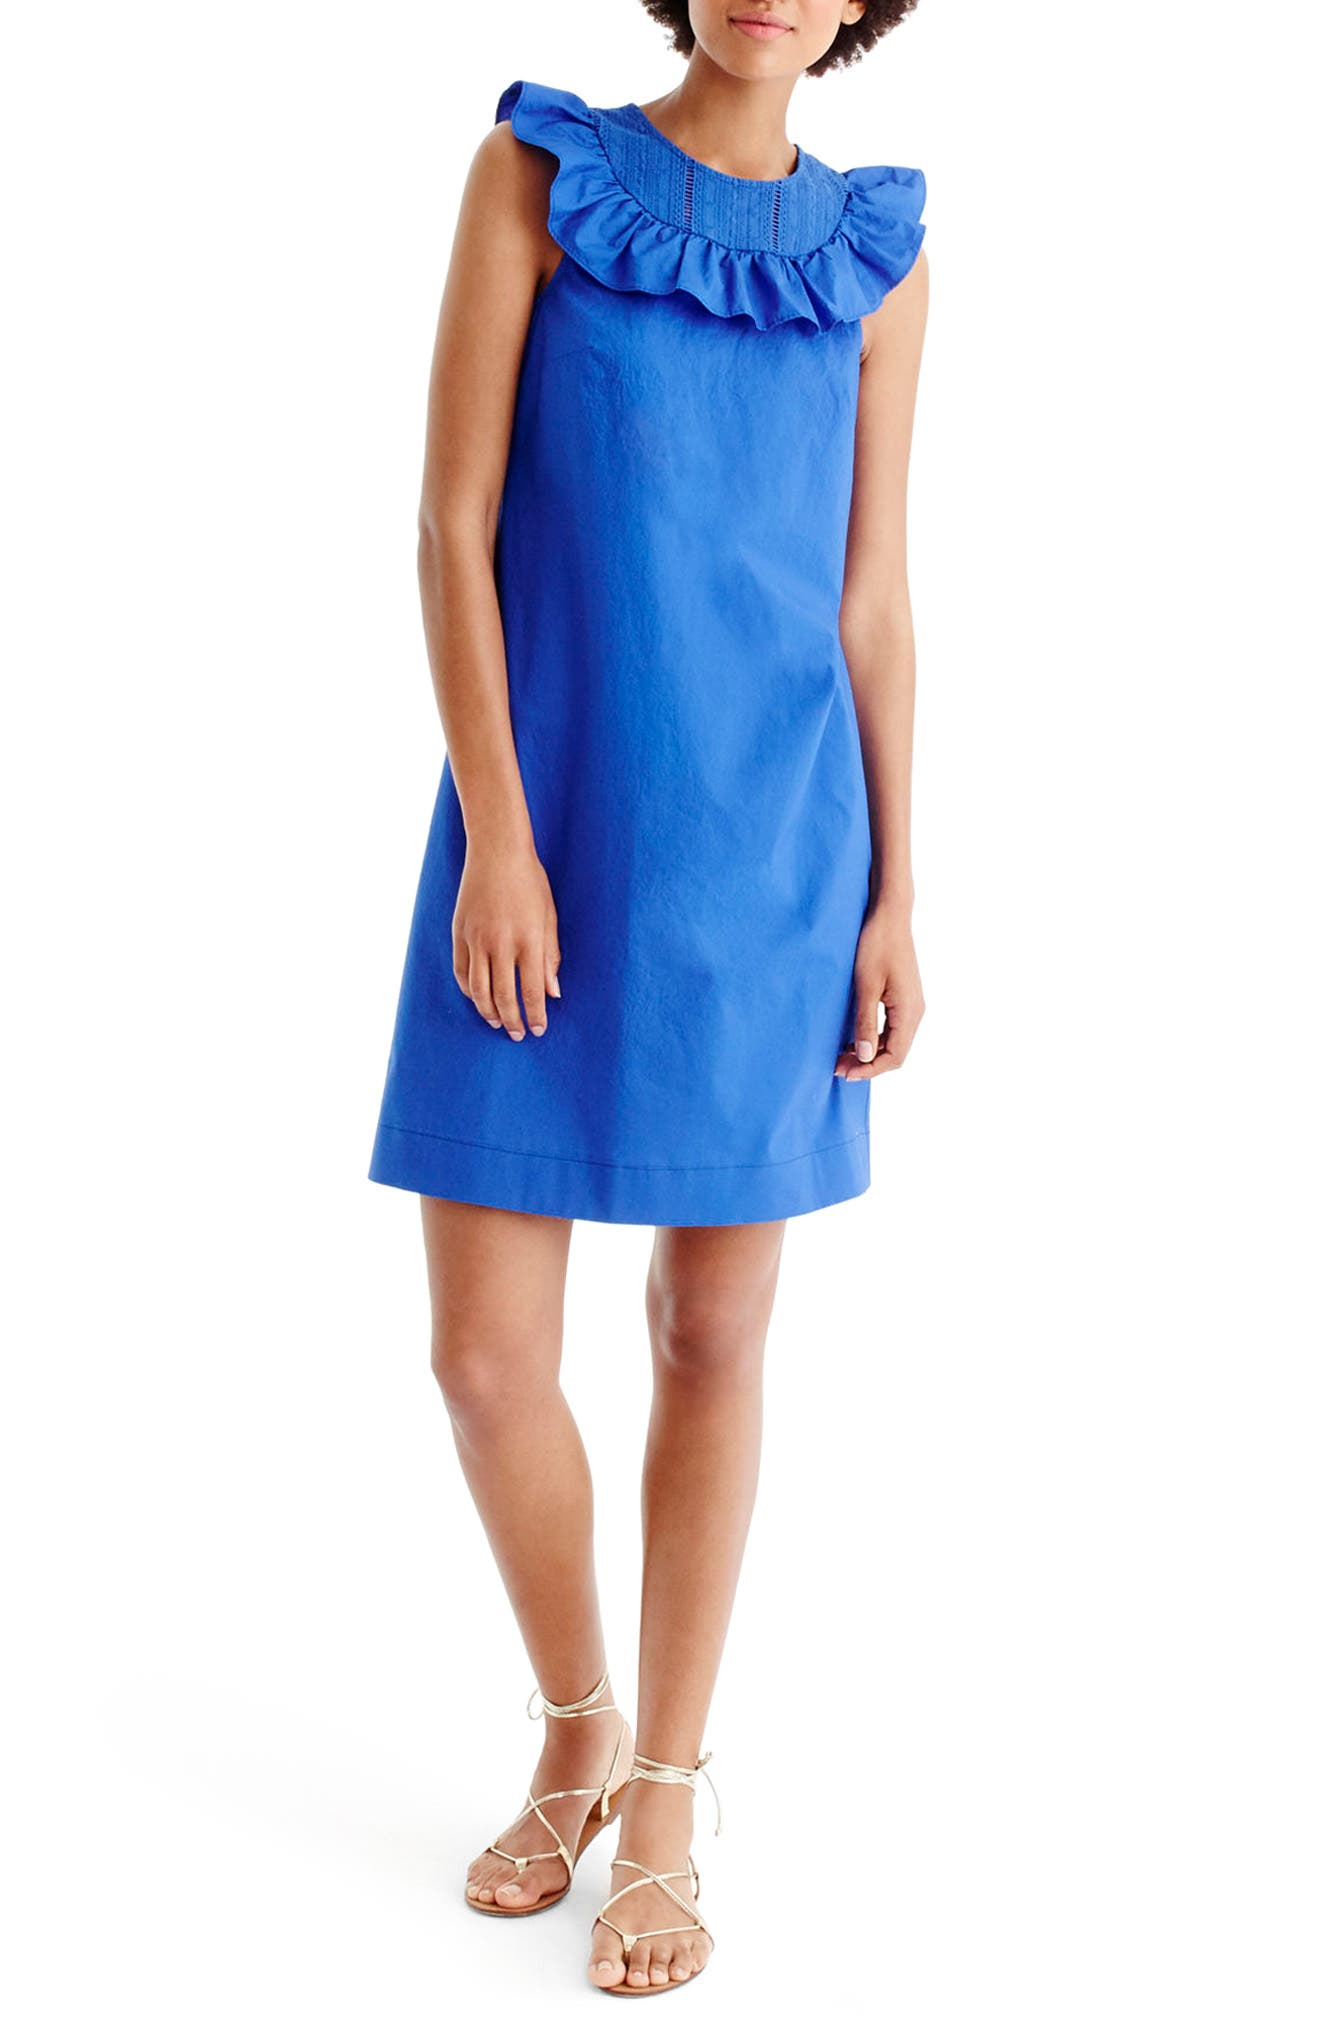 J.Crew Ruffle Neck Dress